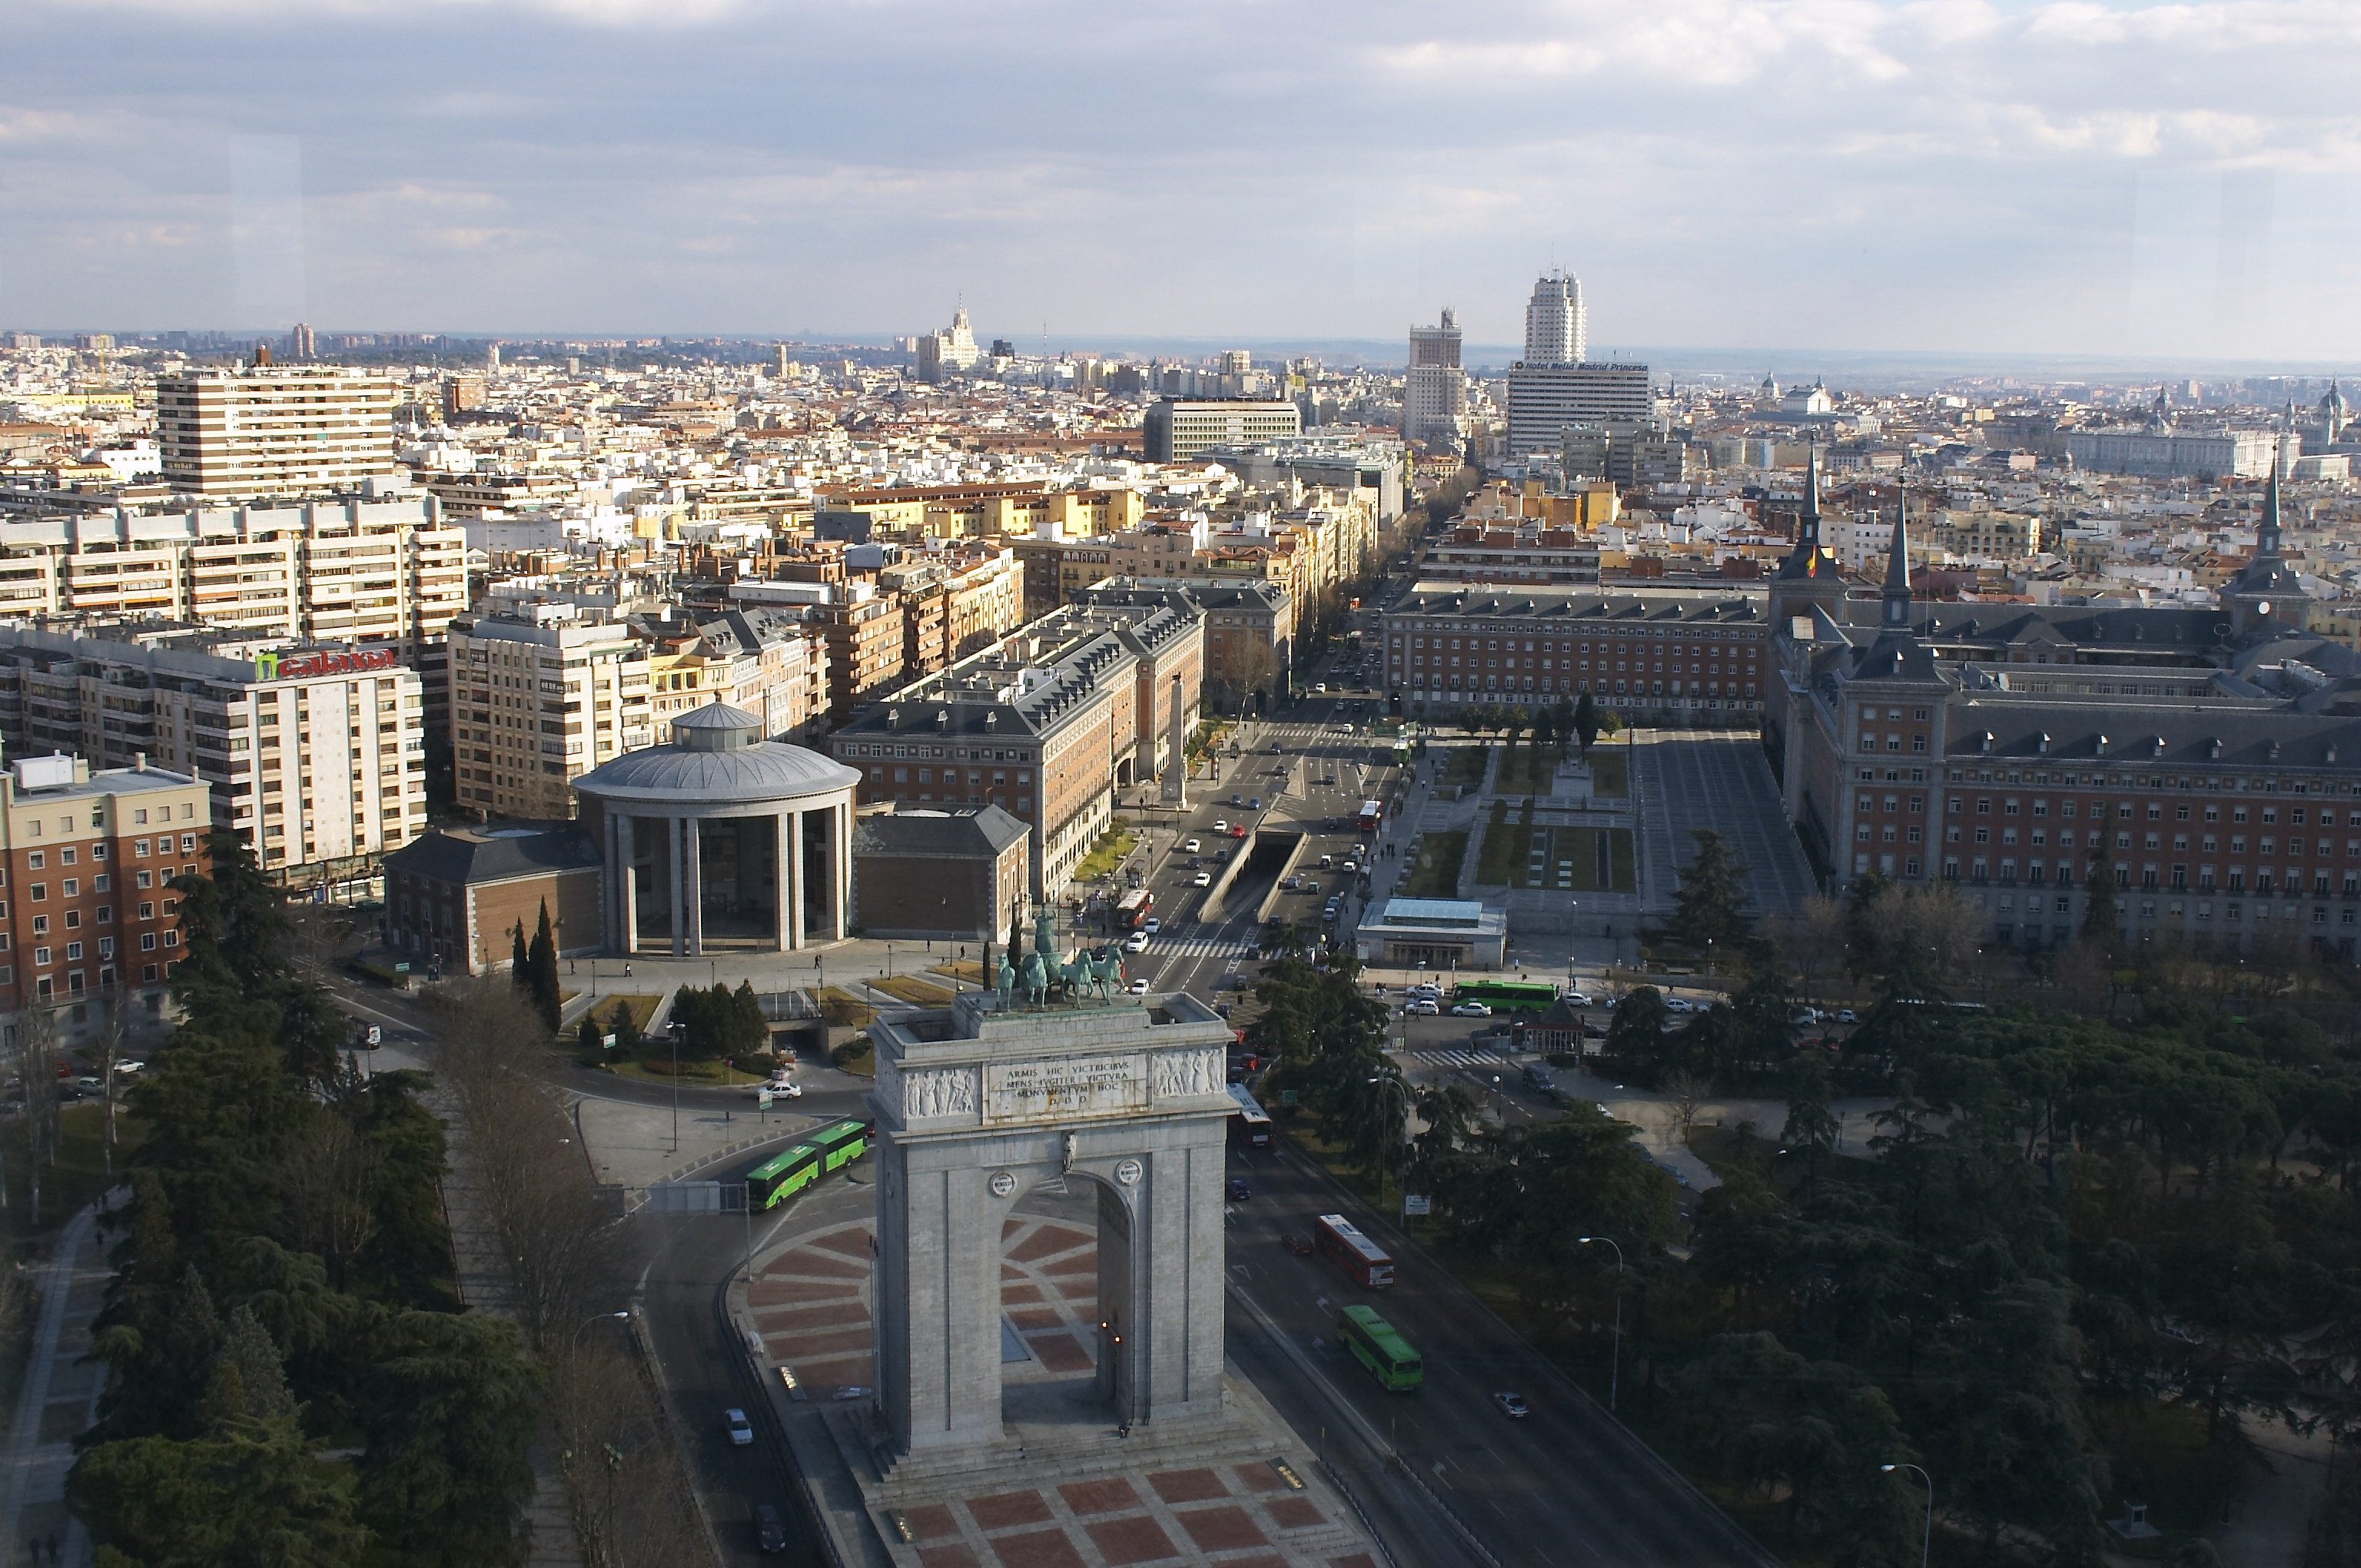 Madrid - Plaza de Moncloa - 20050220